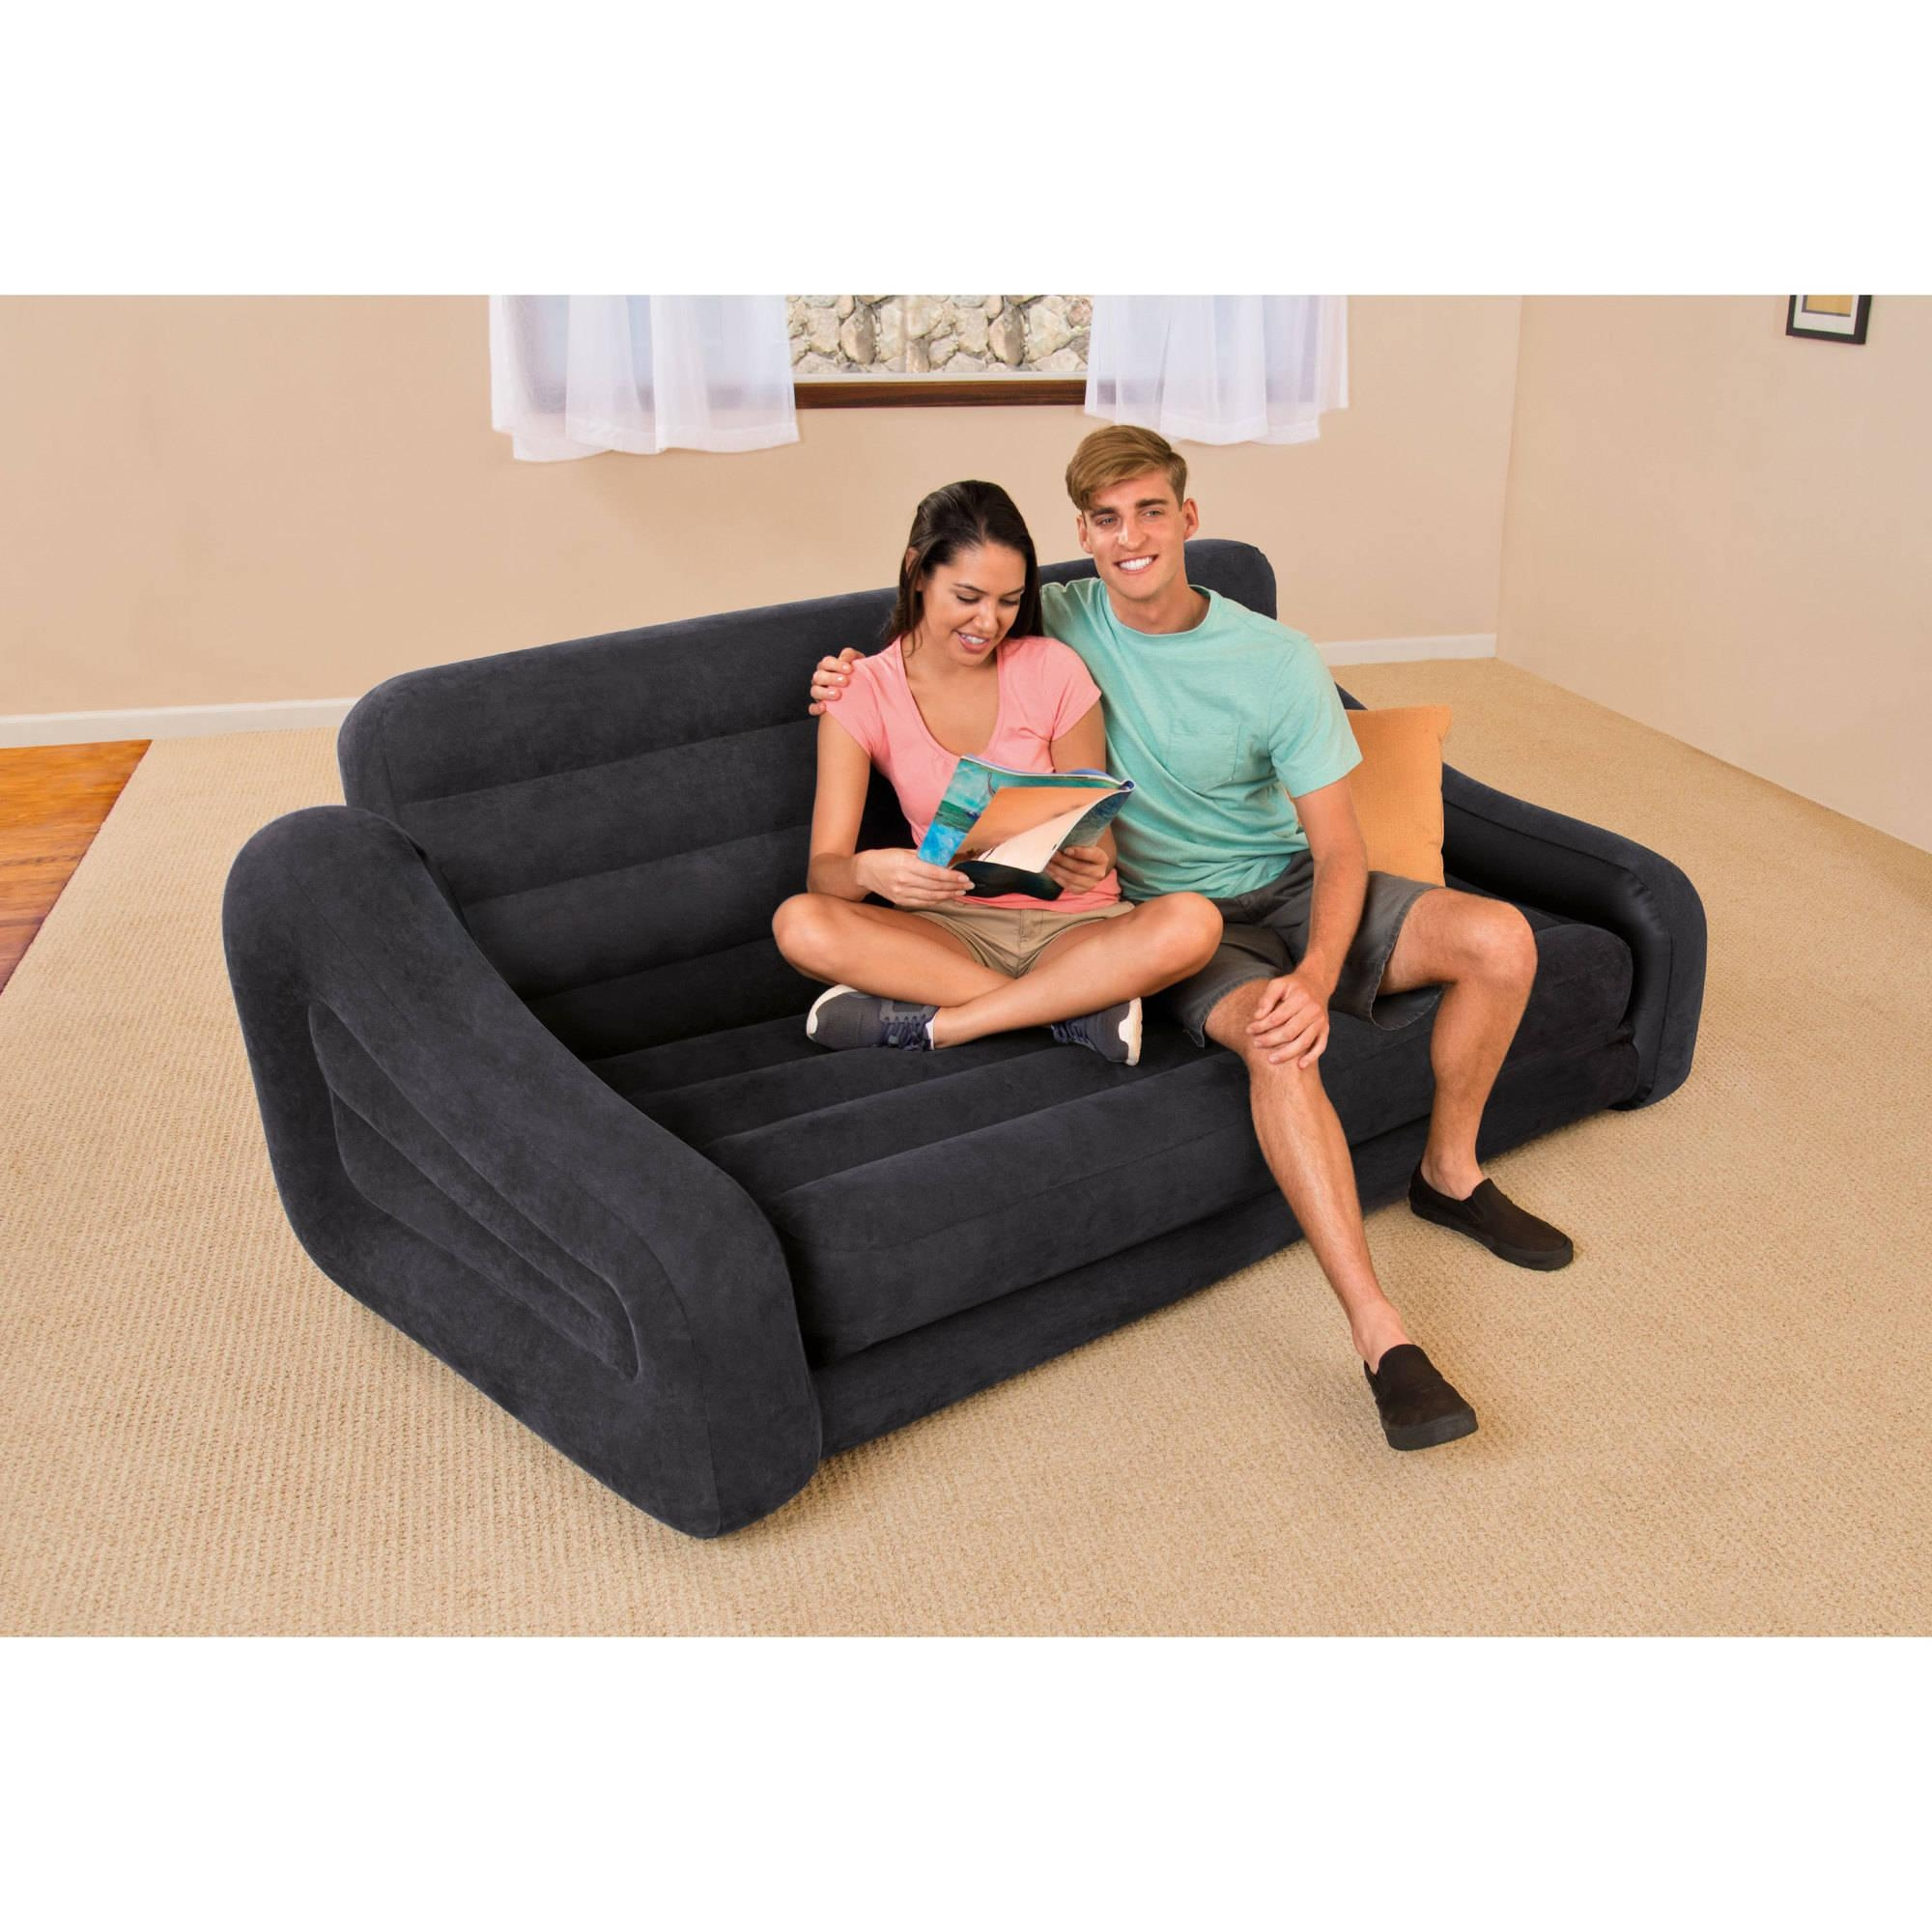 Intex Queen Inflatable Pull Out Sofa Bed – Walmart Regarding Pull Out Queen Size Bed Sofas (View 10 of 20)